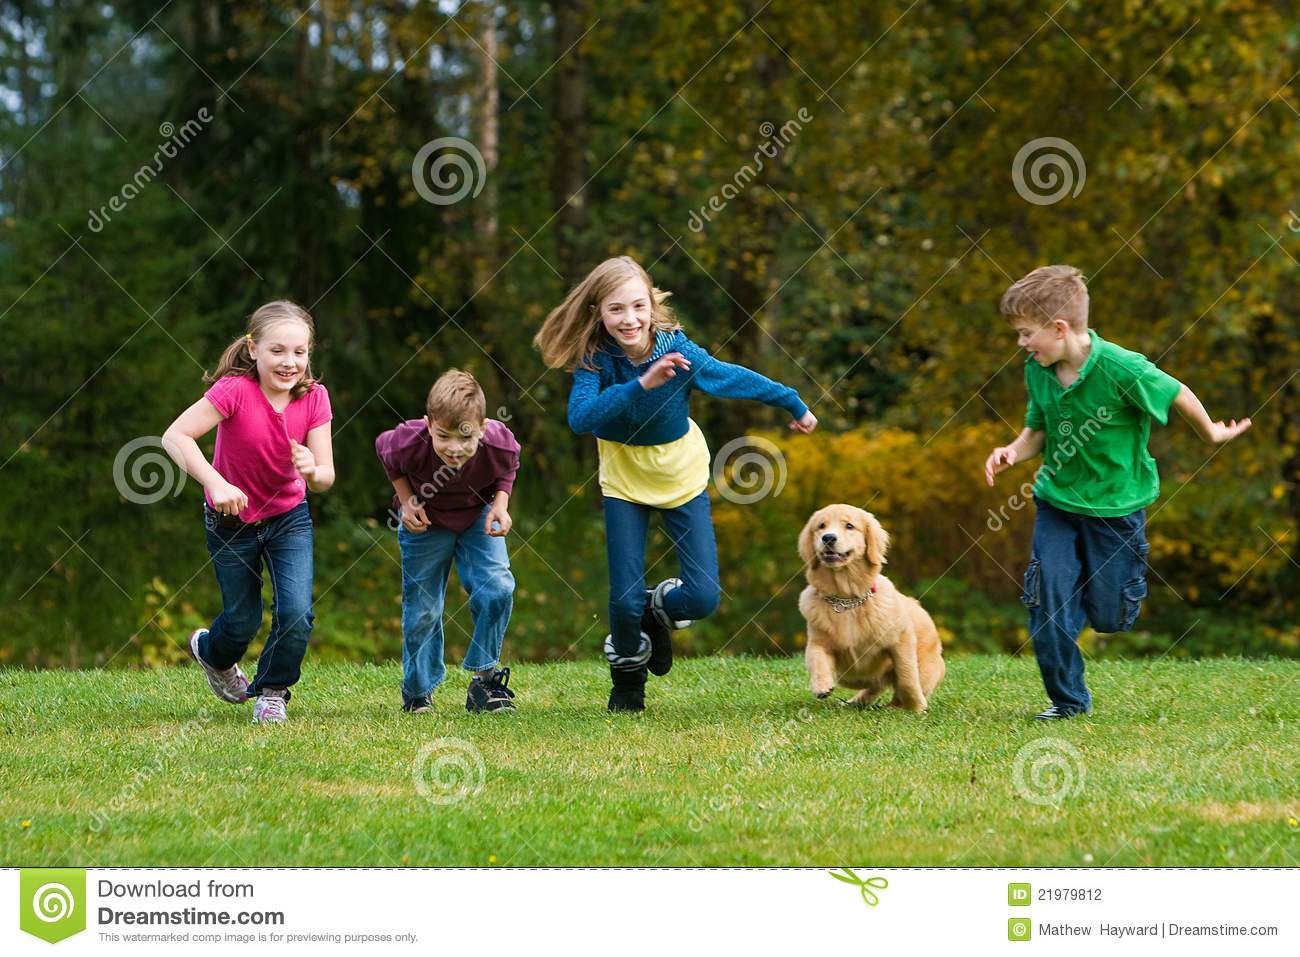 A group of kids racing on grass